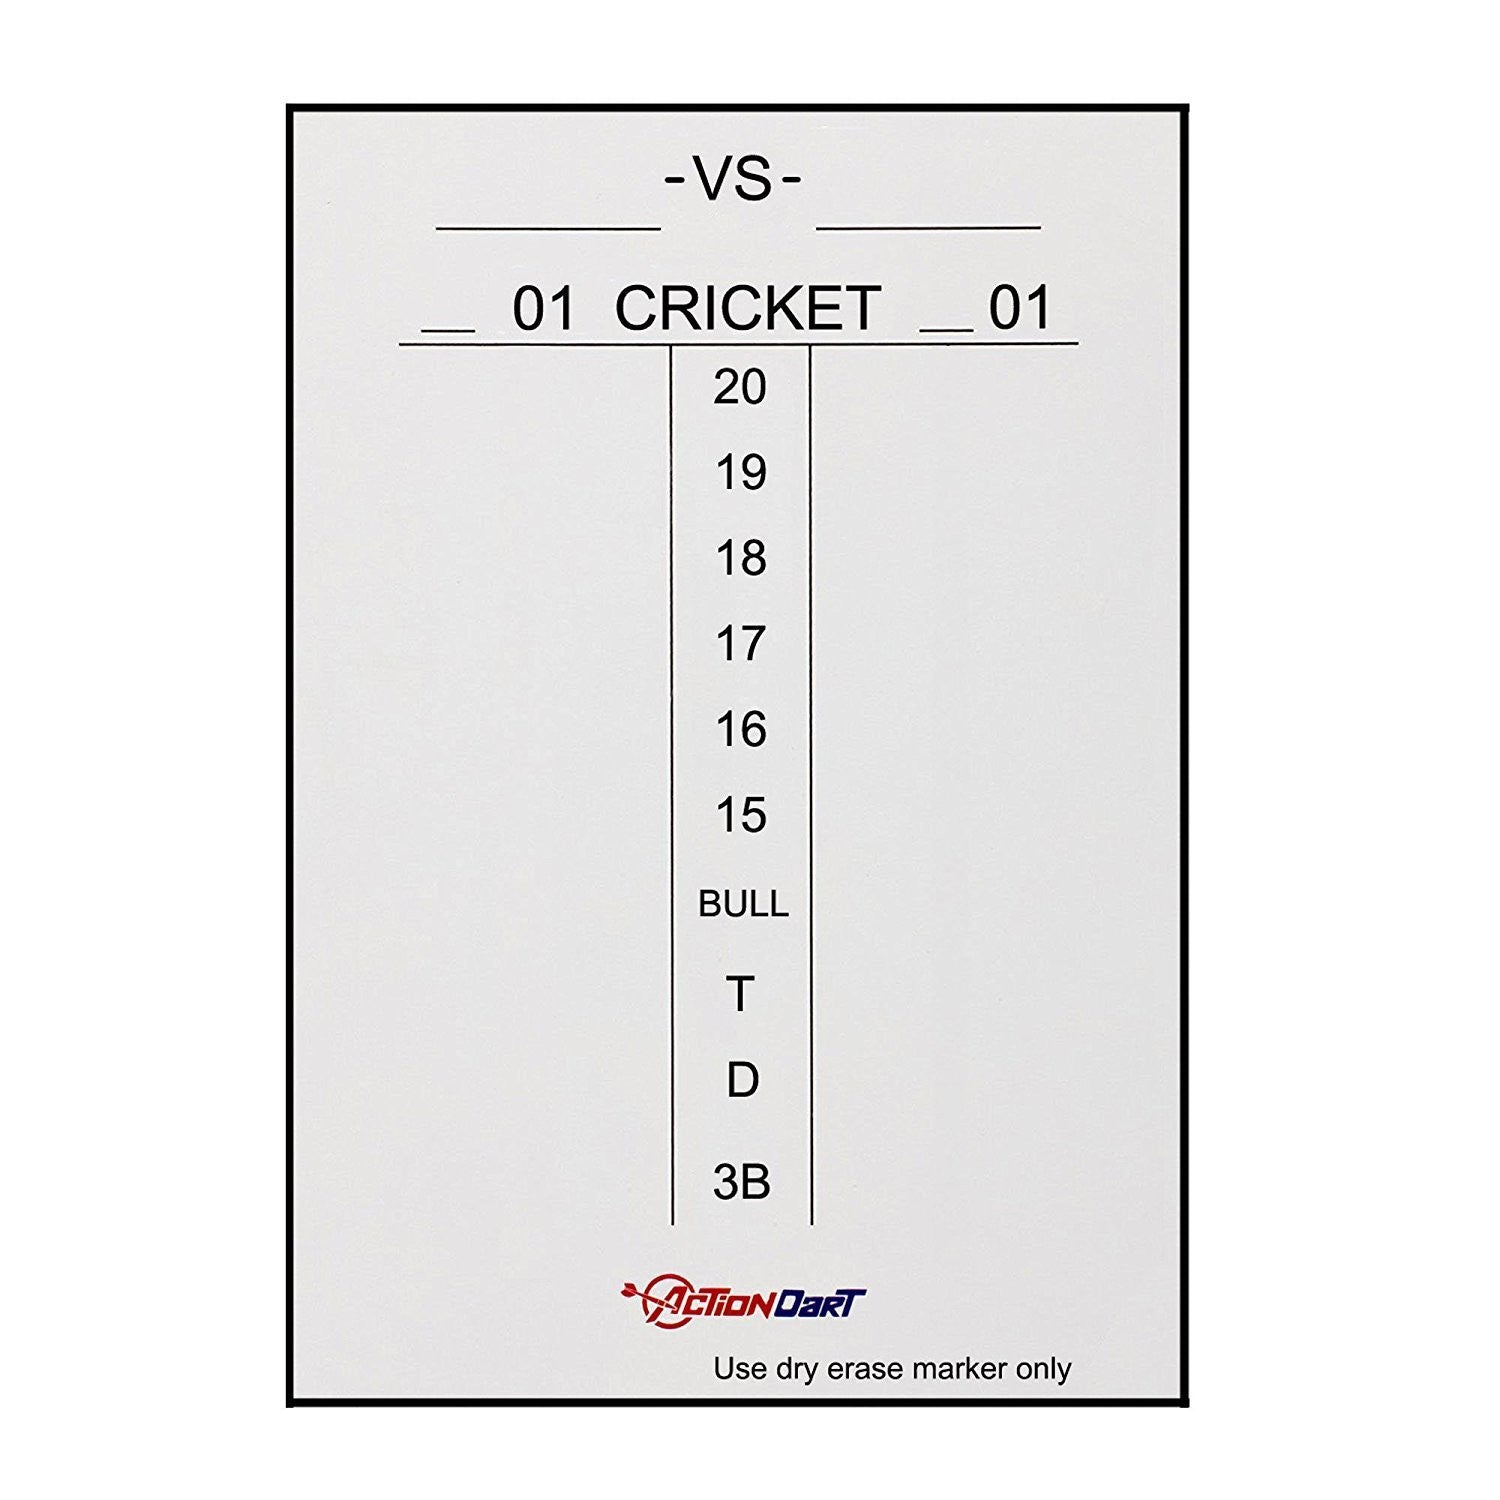 Actiondart Magnetic Dry Erase Scoreboard Cricket And 01 Dart Games